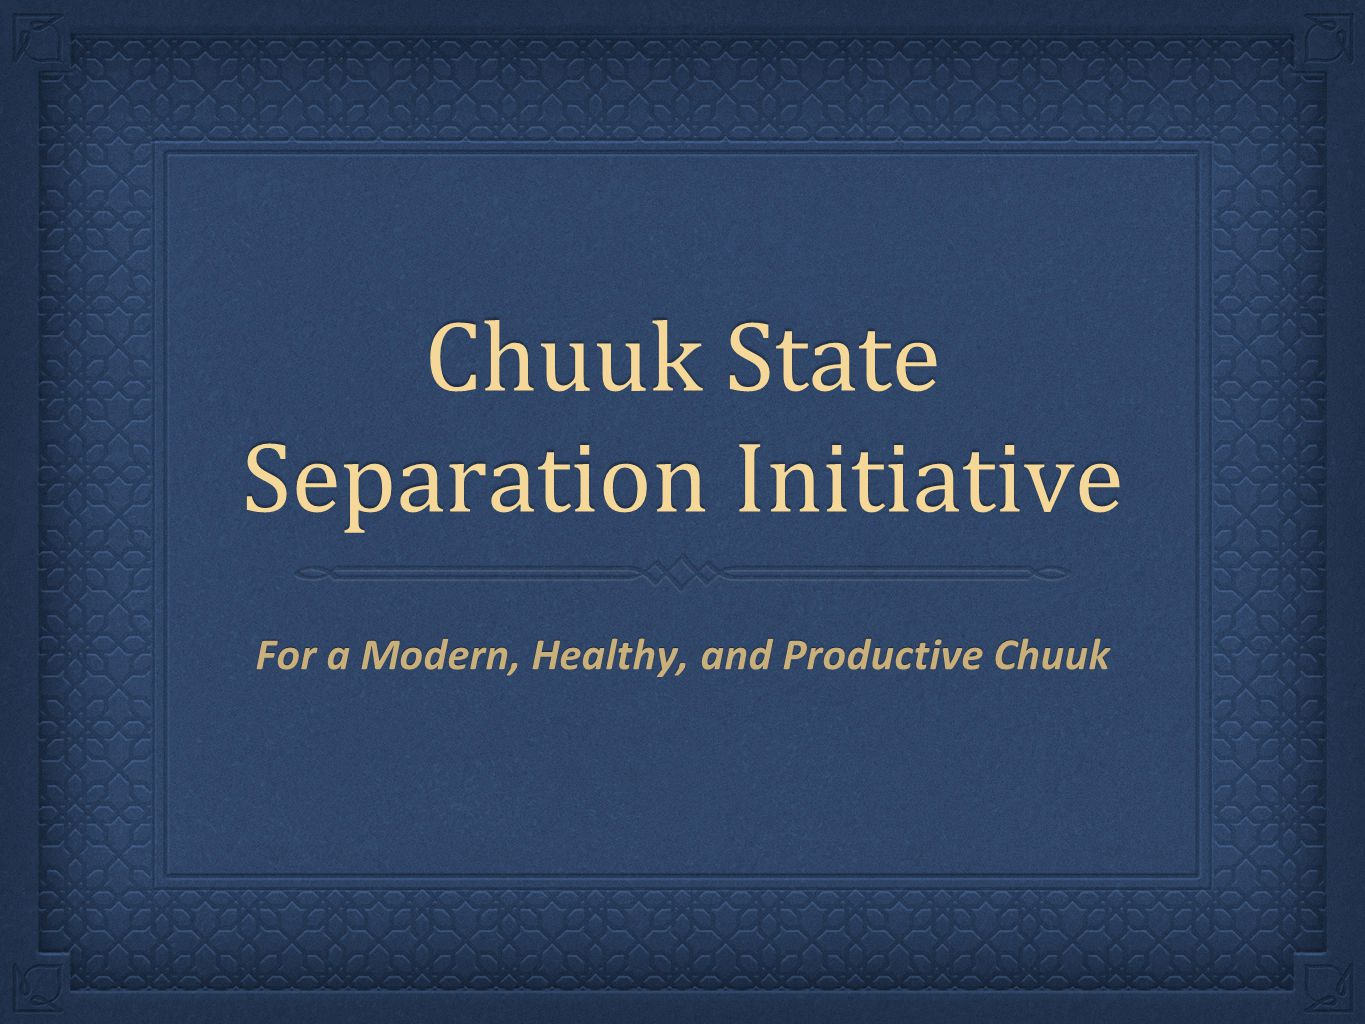 Chuuk State Separation Initiative For a Modern, Healthy, and Productive Chuuk